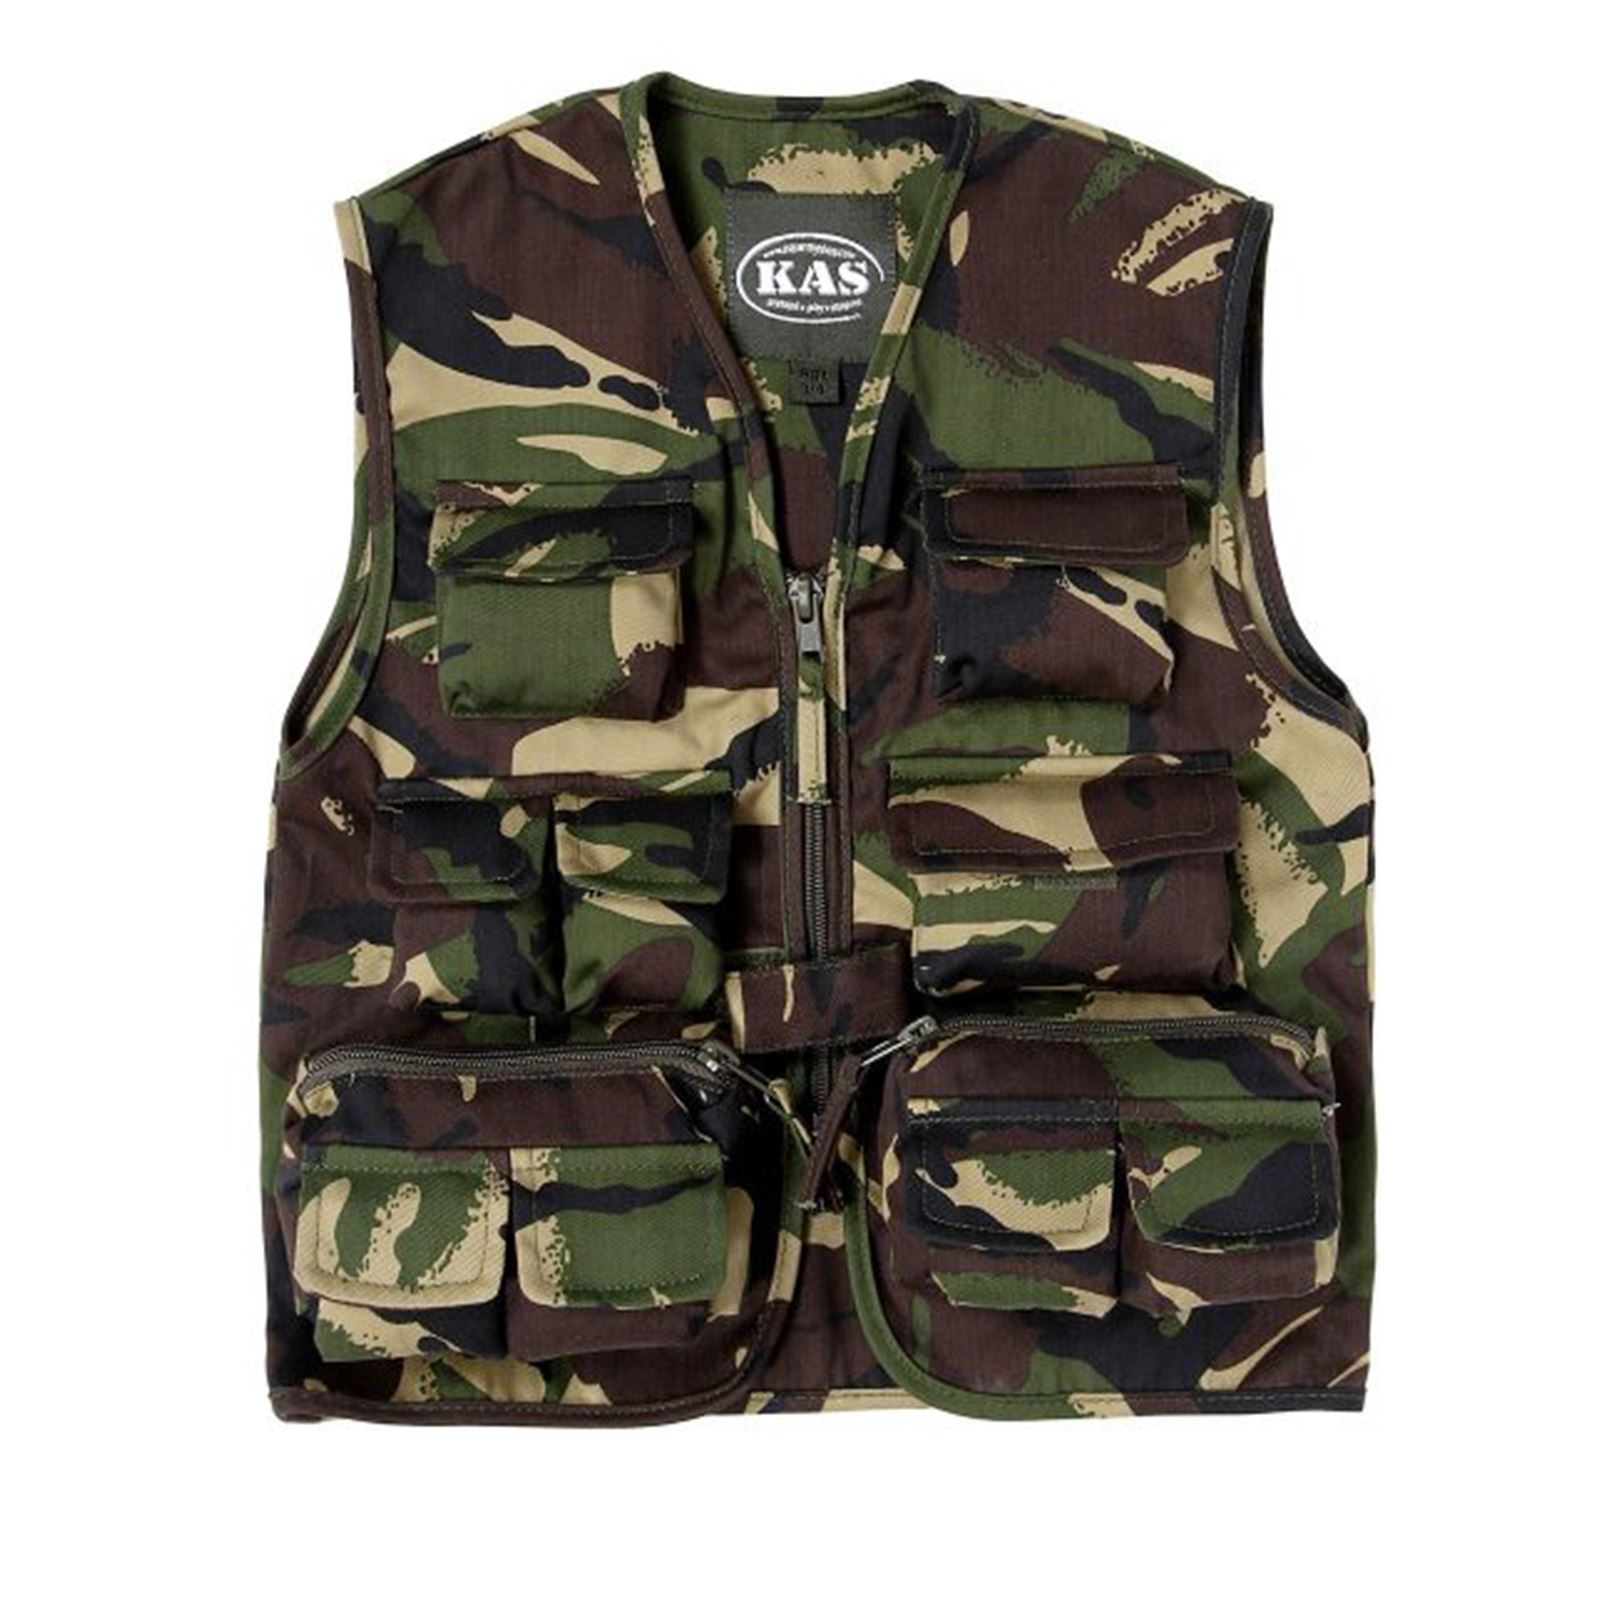 We will outfit the kids in some of the most unique kids camouflage that they can wear from head to toe. You can find a wide collection of the coolest kids fatigues, safari vest, kids boots, camo caps, backpacks, tents, canteens, compasses army helmets, toy .